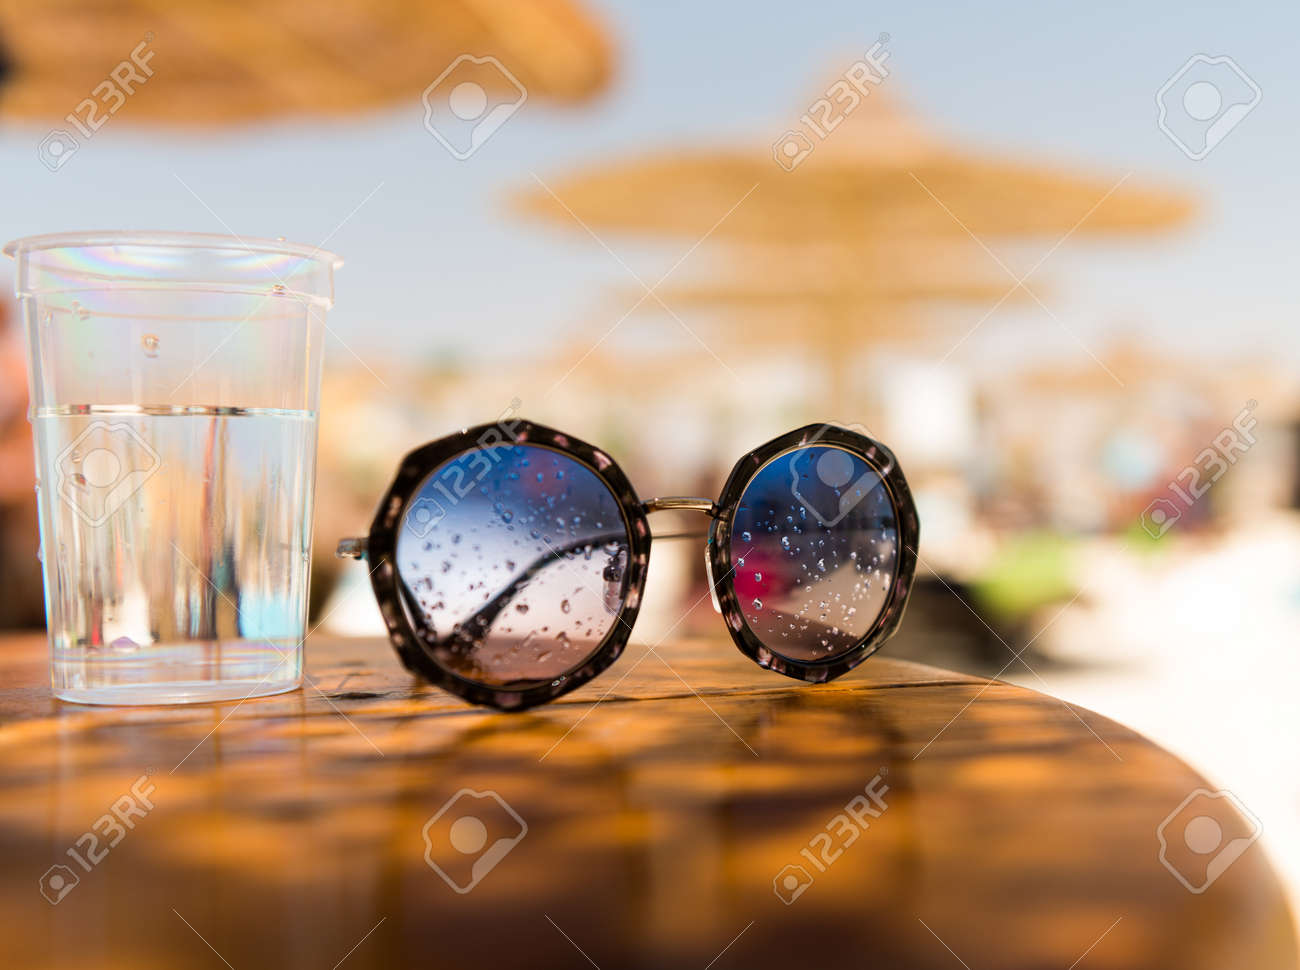 sunglasses on summer wooden table - 127951891